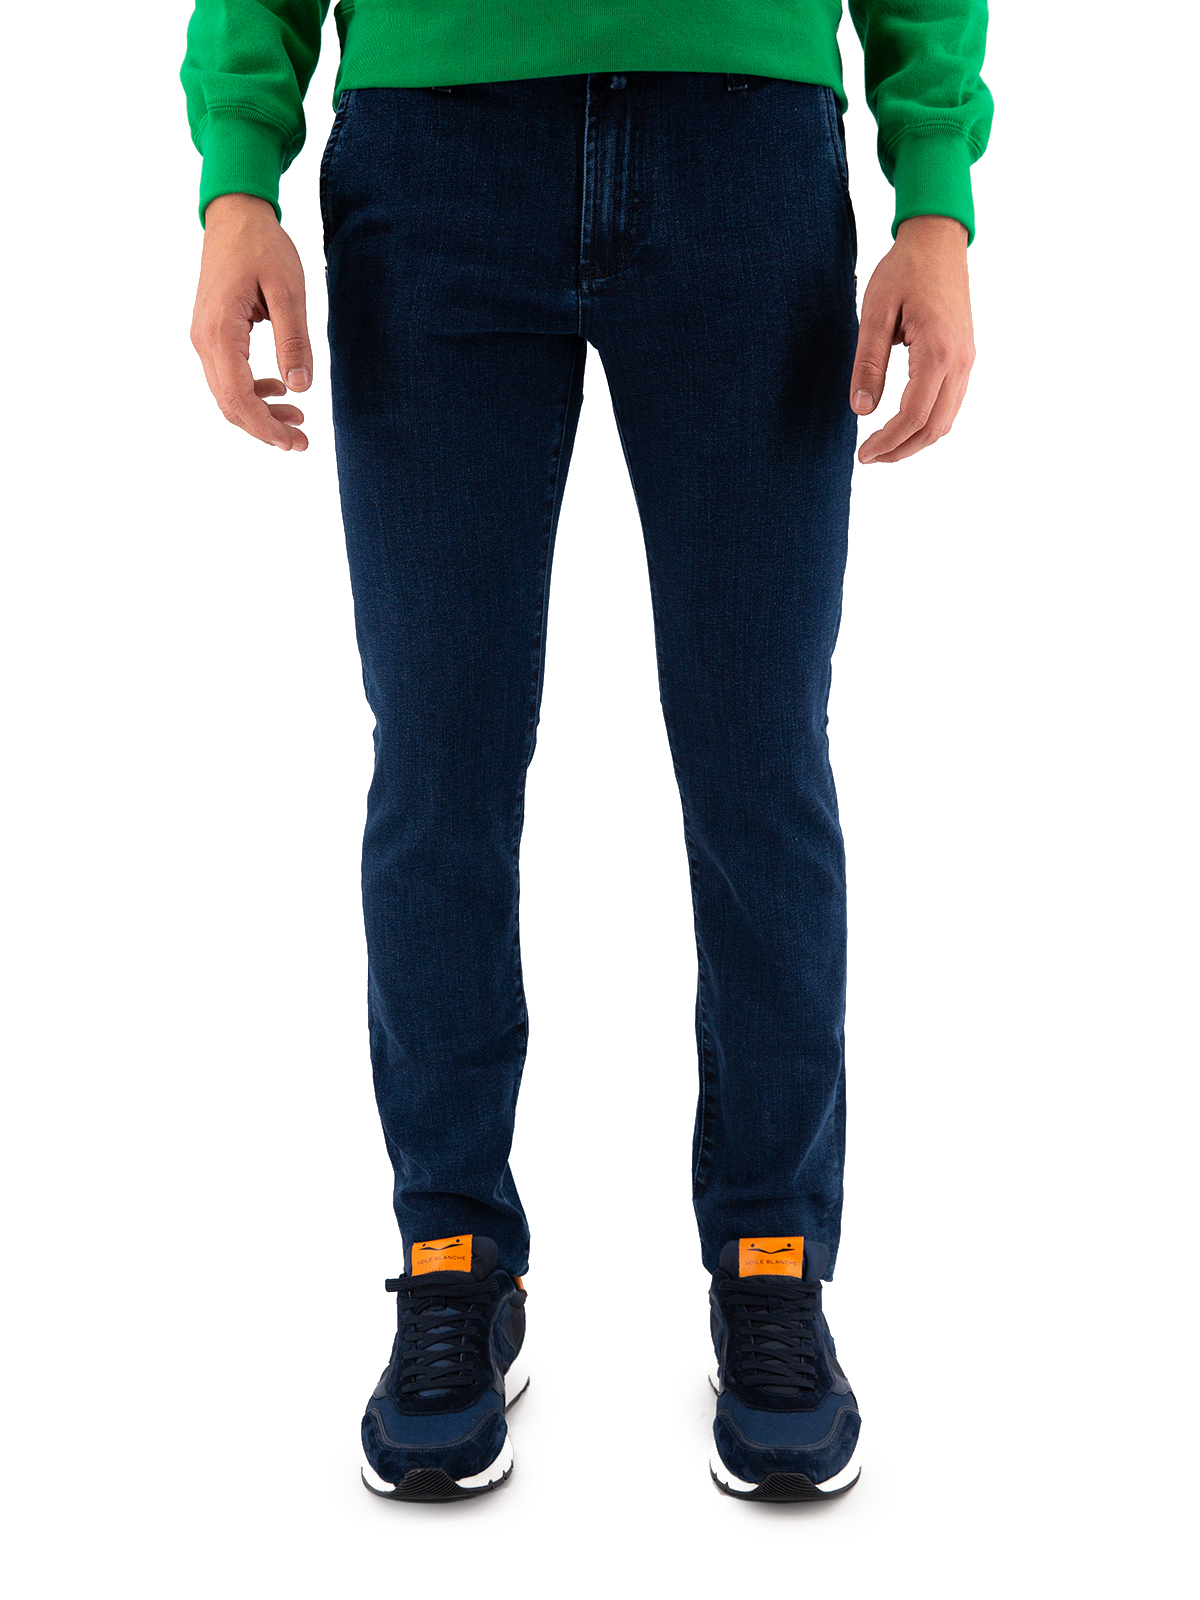 Reporter Jeans 9R70434 H0101